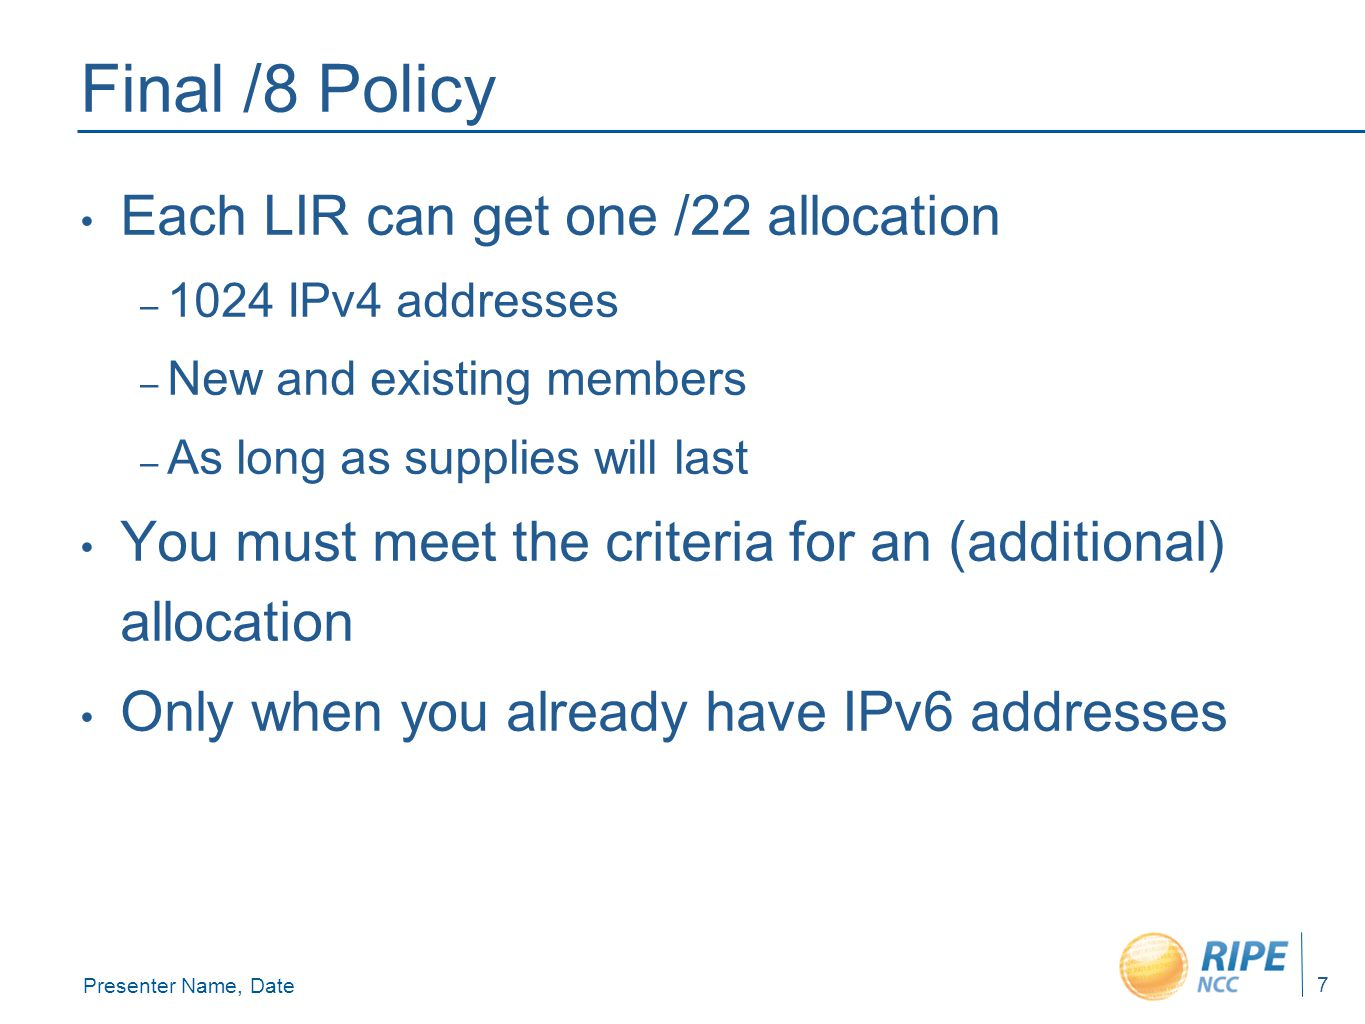 Presenter Name, Date 7 Final /8 Policy Each LIR can get one /22 allocation – 1024 IPv4 addresses – New and existing members – As long as supplies will last You must meet the criteria for an (additional) allocation Only when you already have IPv6 addresses